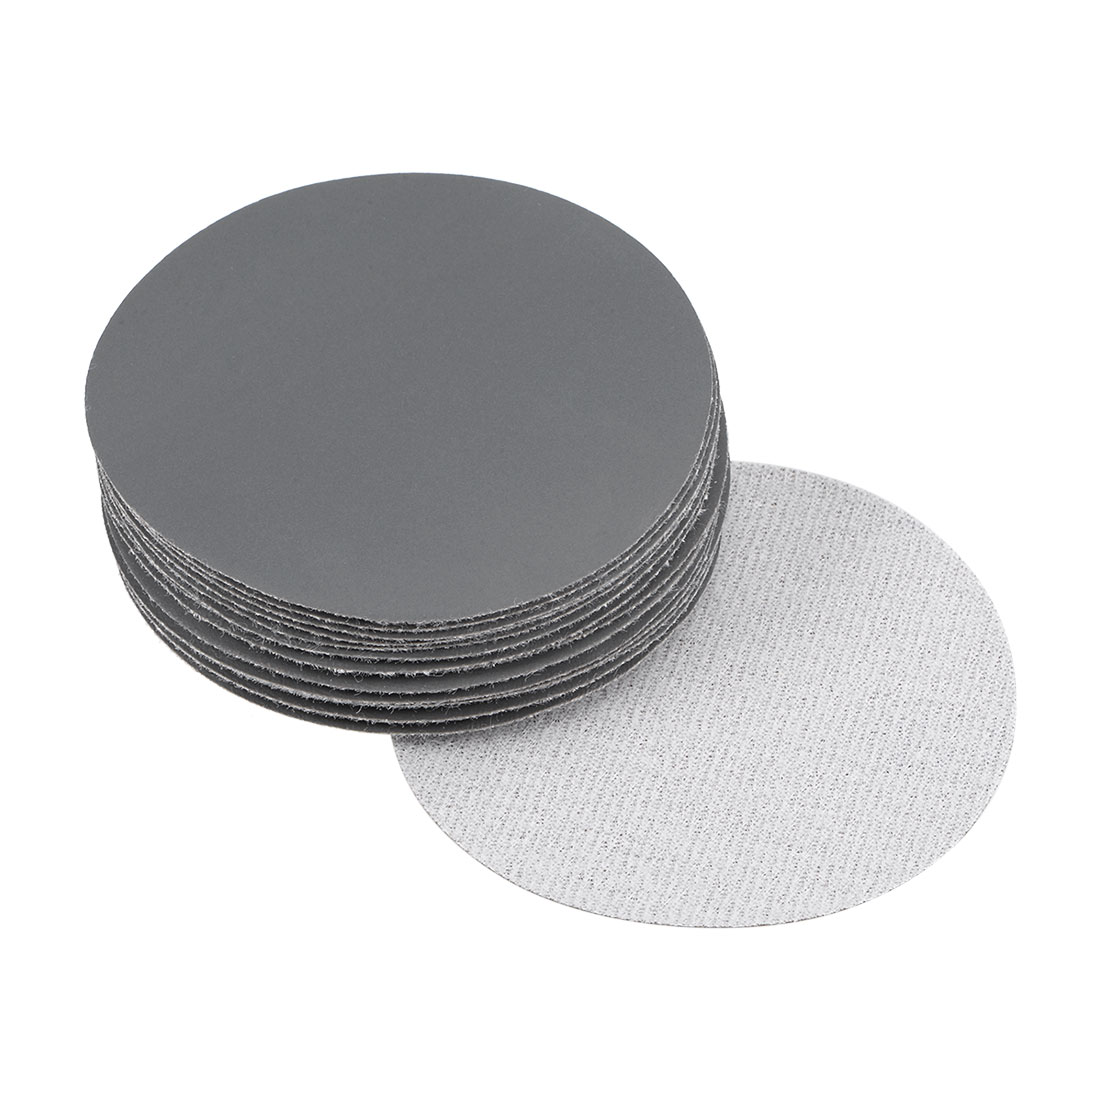 3 inch Wet Dry Discs 2500 Grit Hook and Loop Sanding Disc Silicon Carbide 20pcs